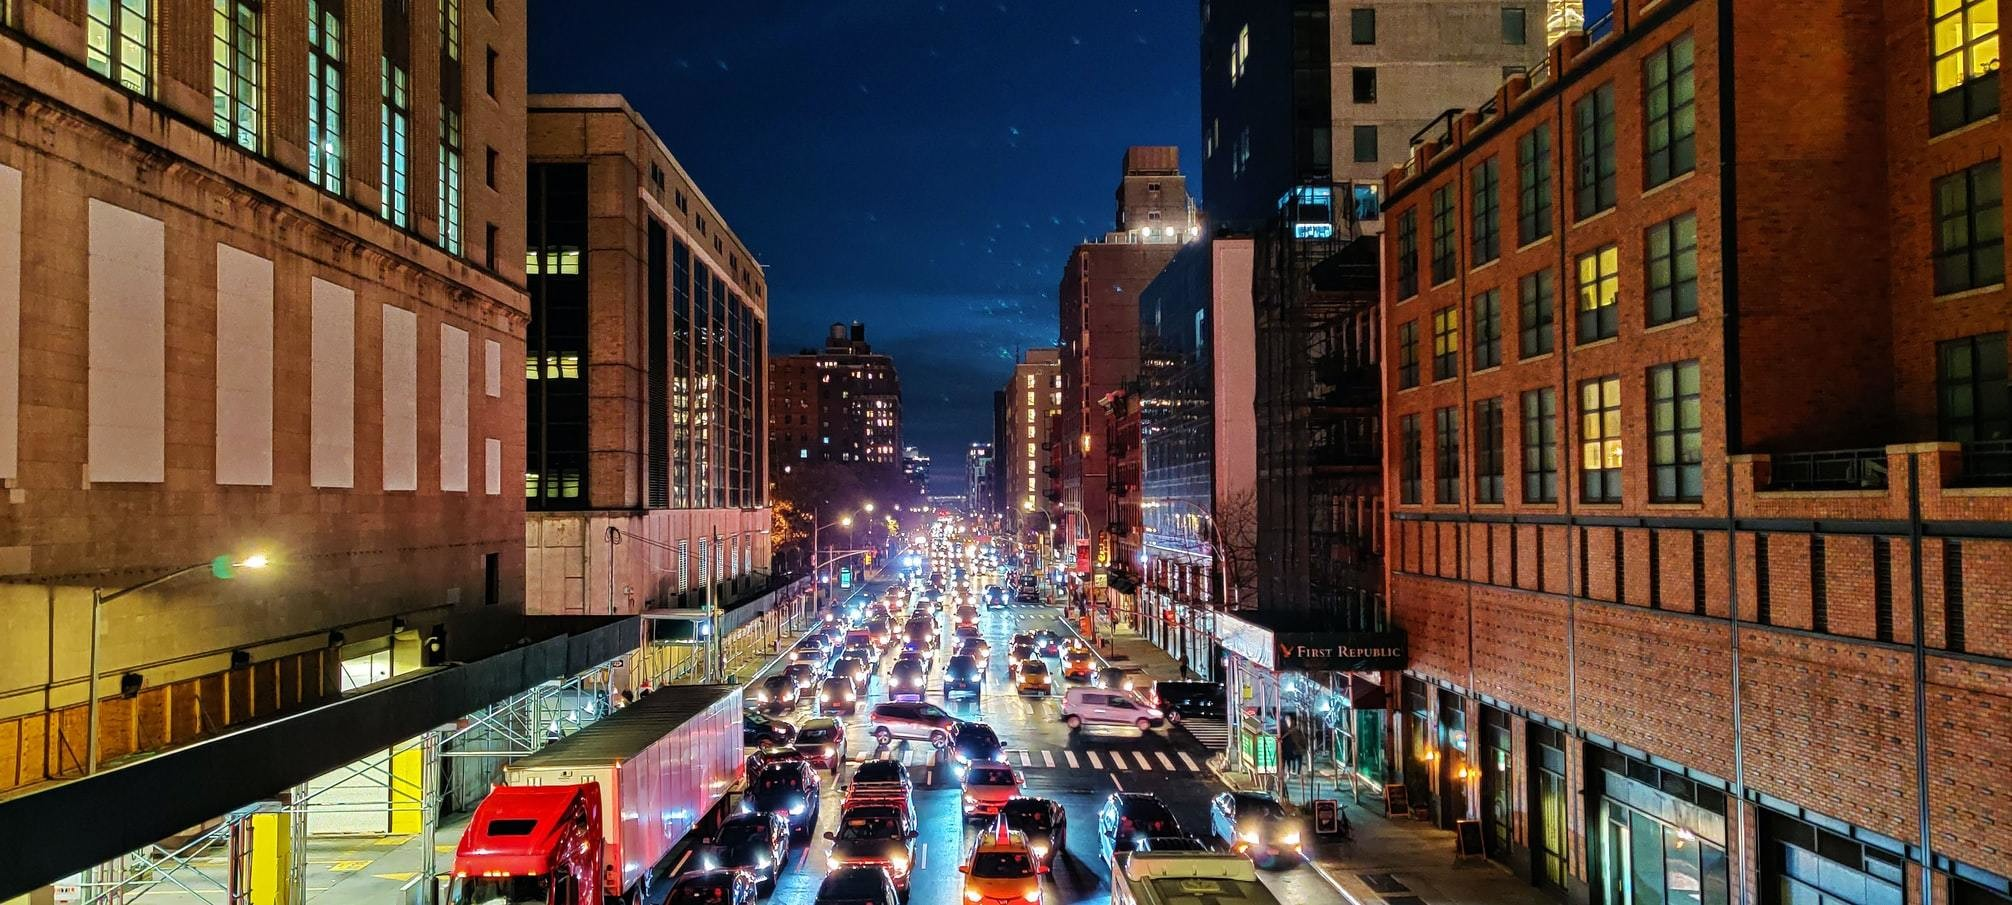 image of a city road filled with cars